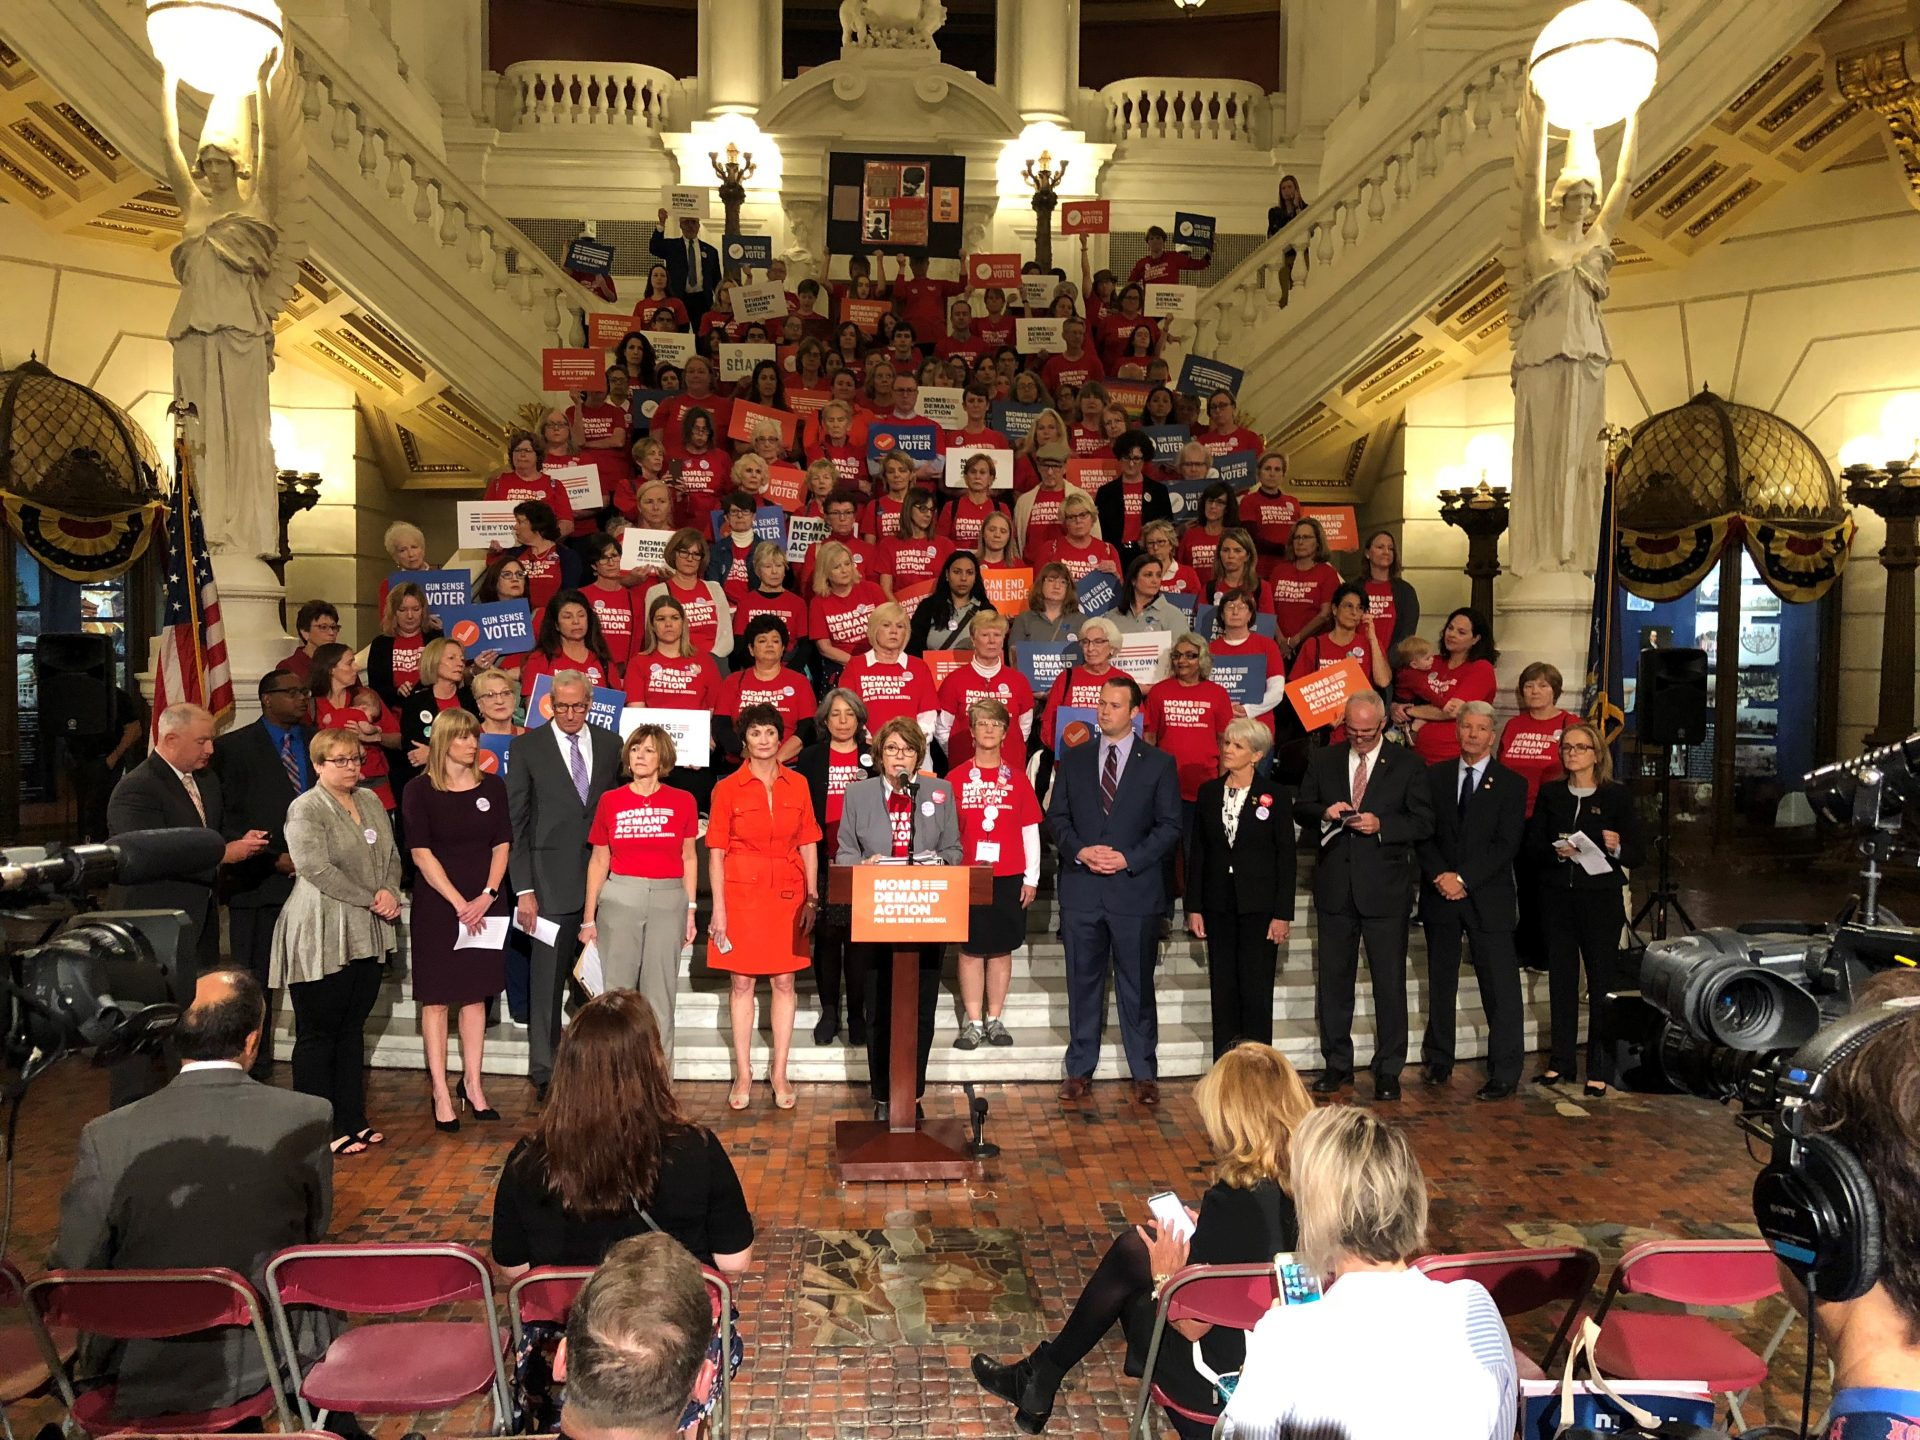 Supporters of legislation to increase gun restrictions in protection-from-abuse and domestic violence cases rally at the state Capitol in Harrisburg on Sept. 24, 2018.